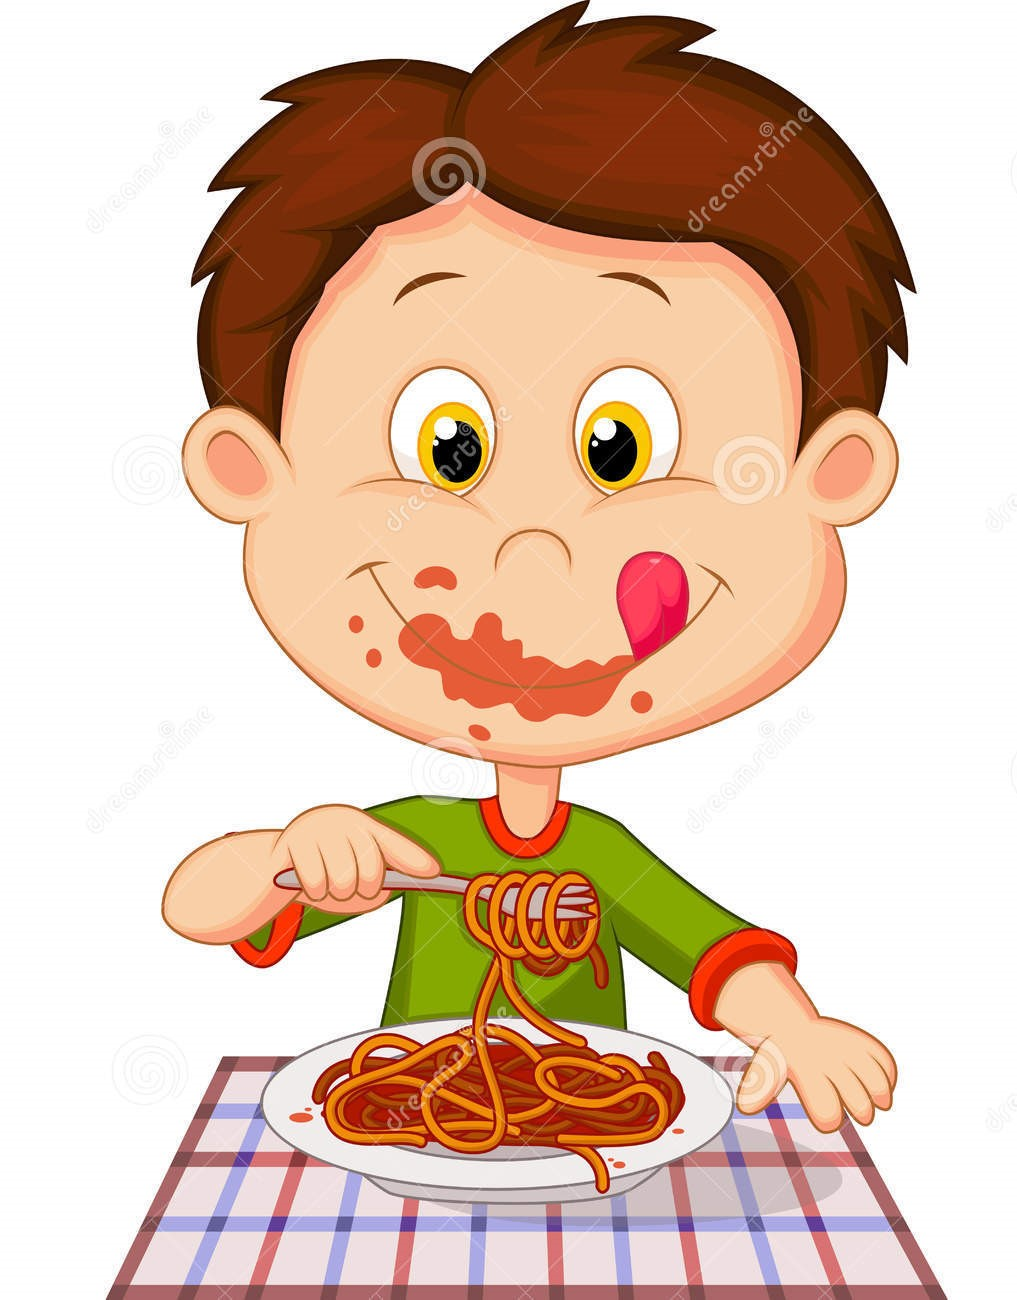 russell bakers essay the art of eating spaghetti